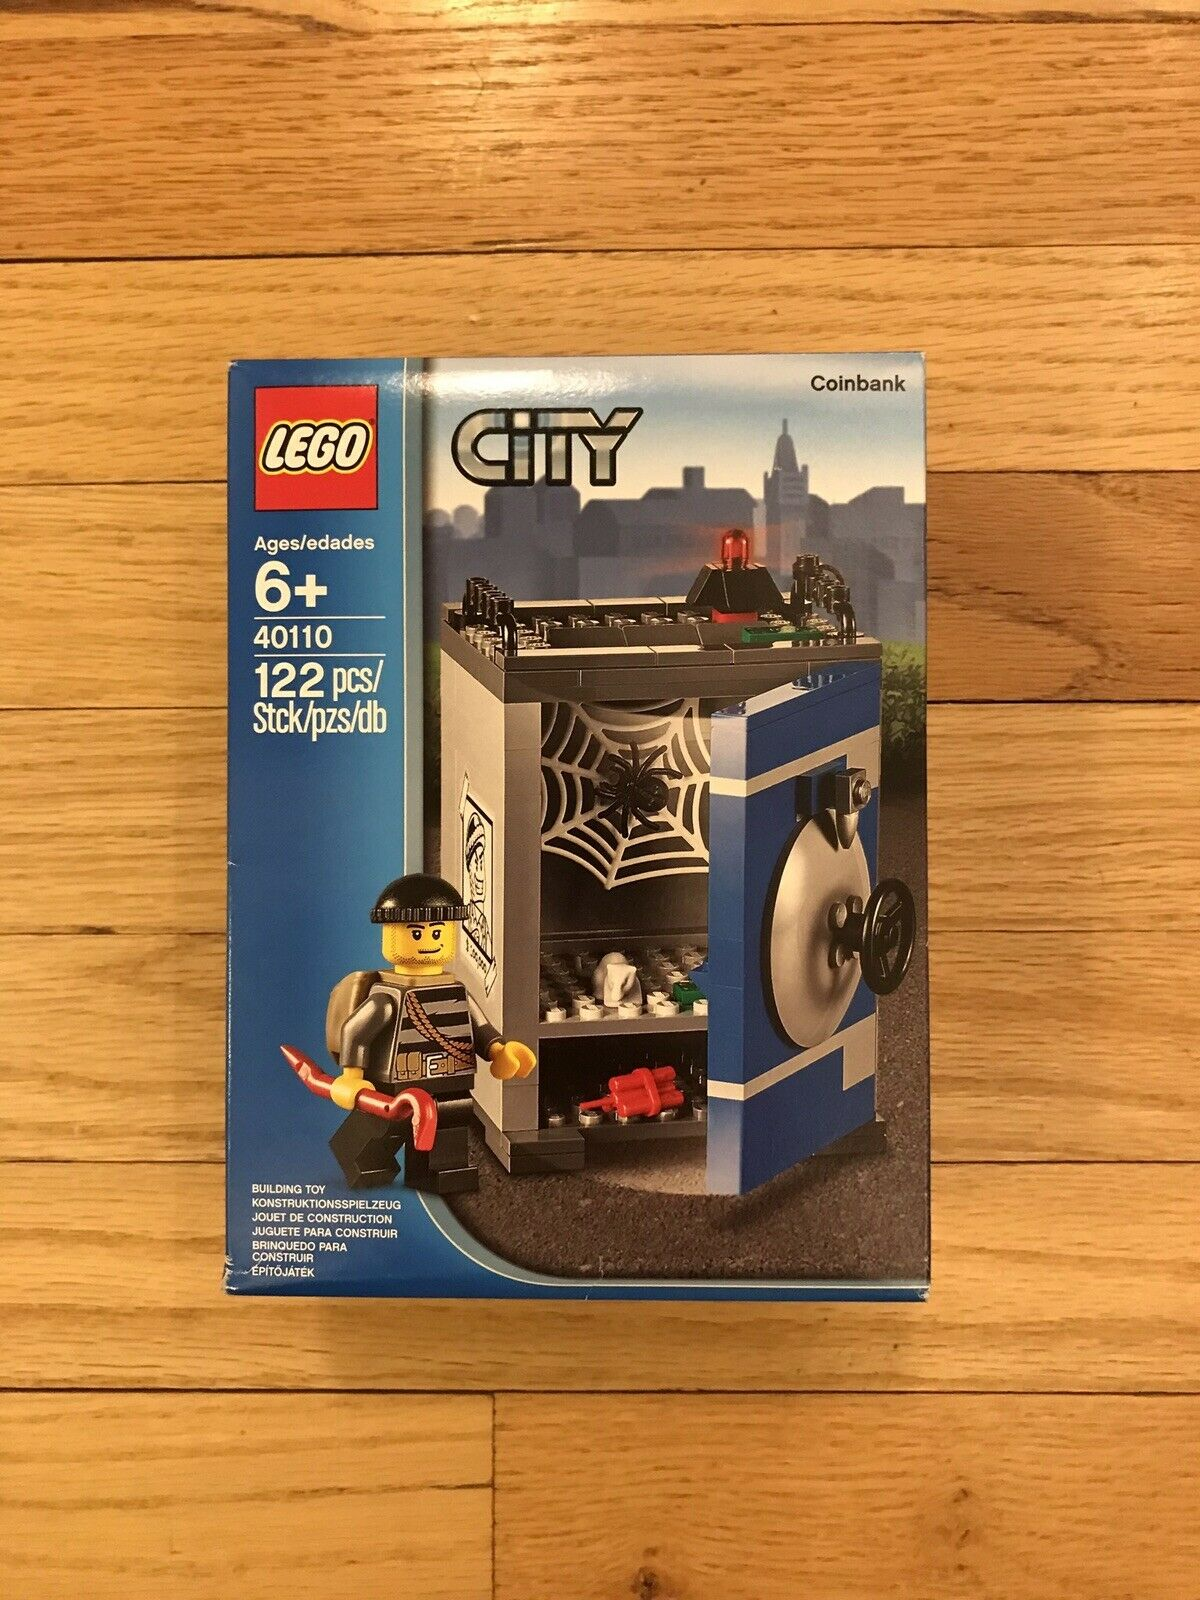 New Factory Sealed Sealed Sealed LEGO City 40110 - City Coin Bank 122 Pcs Piggy bank Safe aa4bb2